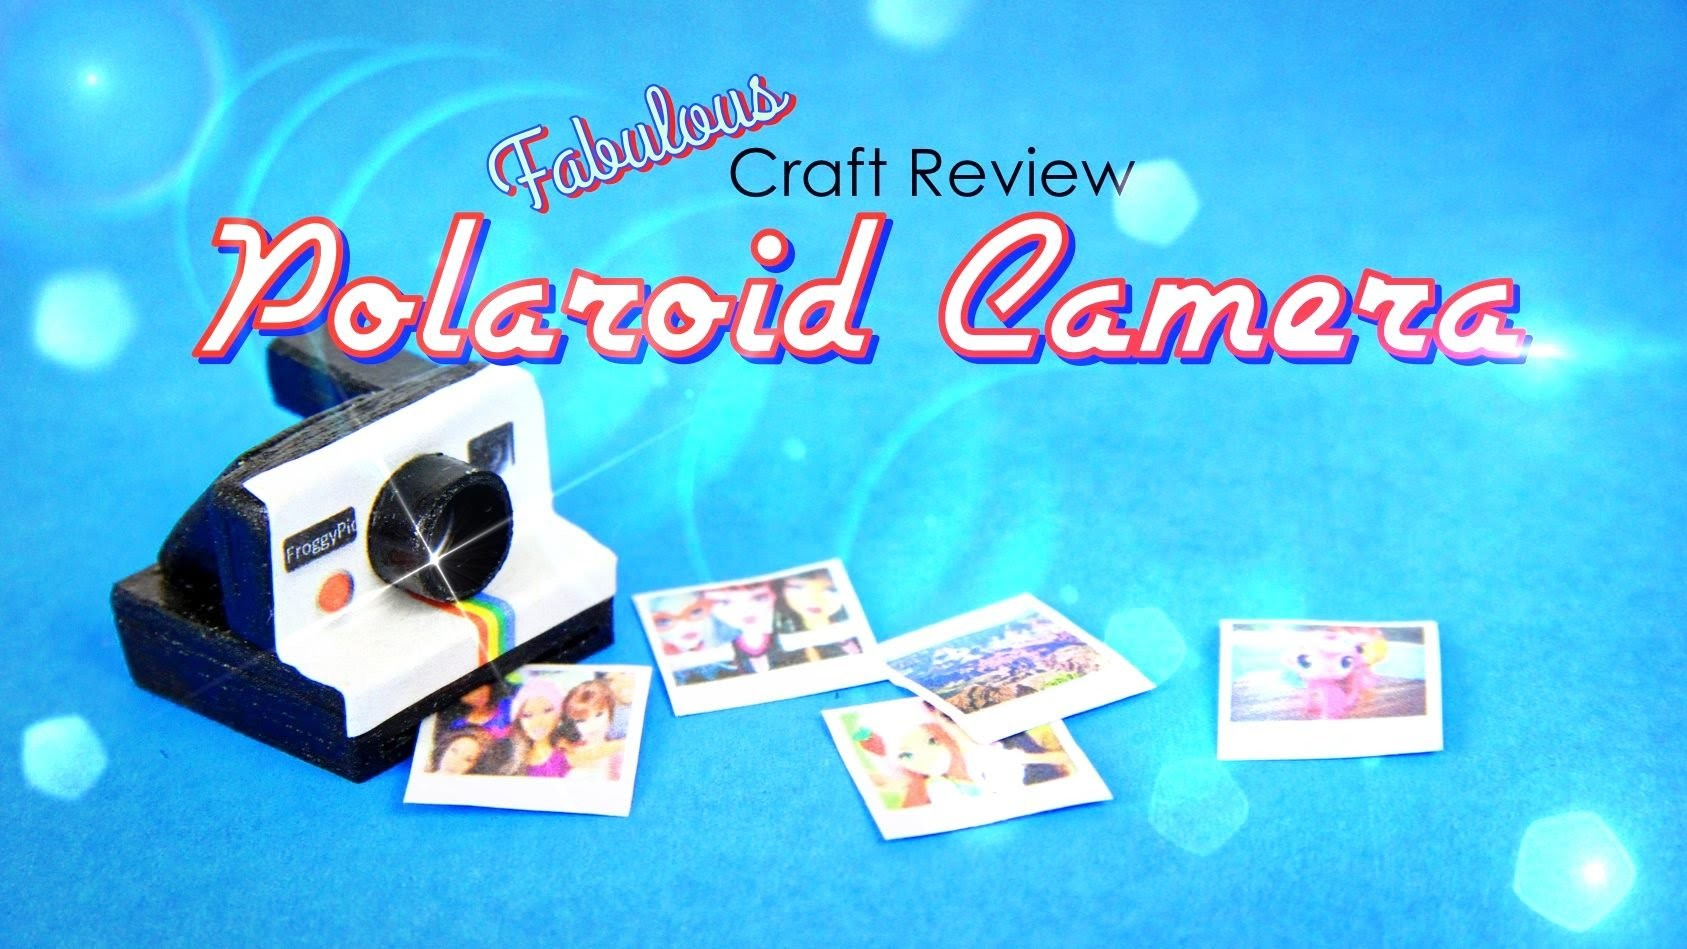 Fabulous Craft Review: Polaroid Camera